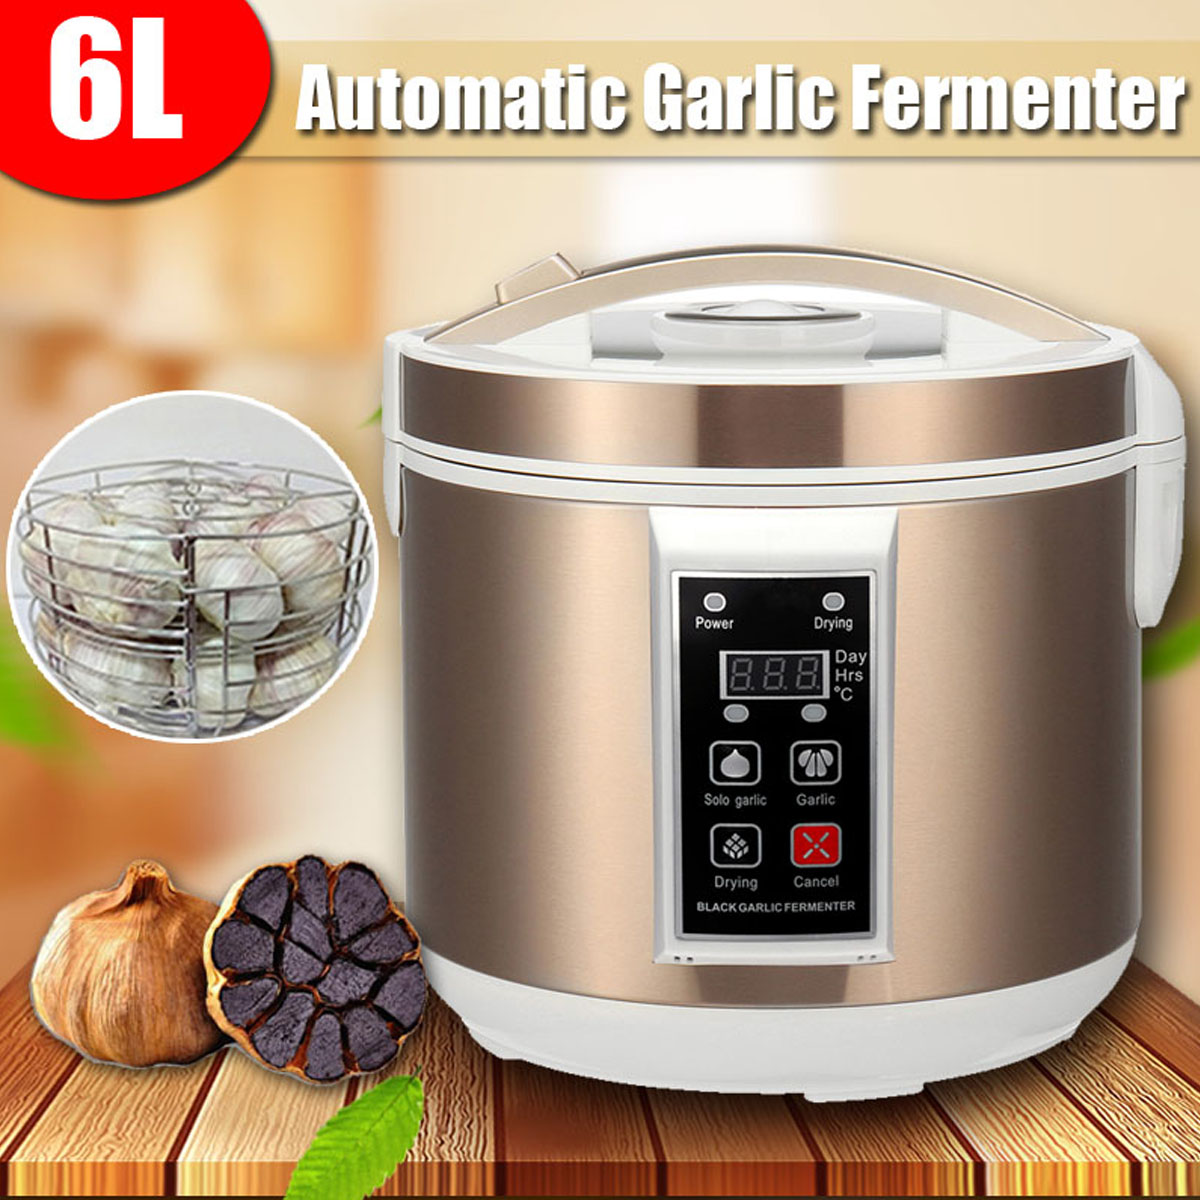 WARMTOO EU/US 220V 6L Large Smart Automatic Black Garlic Fermenter Maker Zymolysis Machine Electric Household Automatic Pot BoxWARMTOO EU/US 220V 6L Large Smart Automatic Black Garlic Fermenter Maker Zymolysis Machine Electric Household Automatic Pot Box